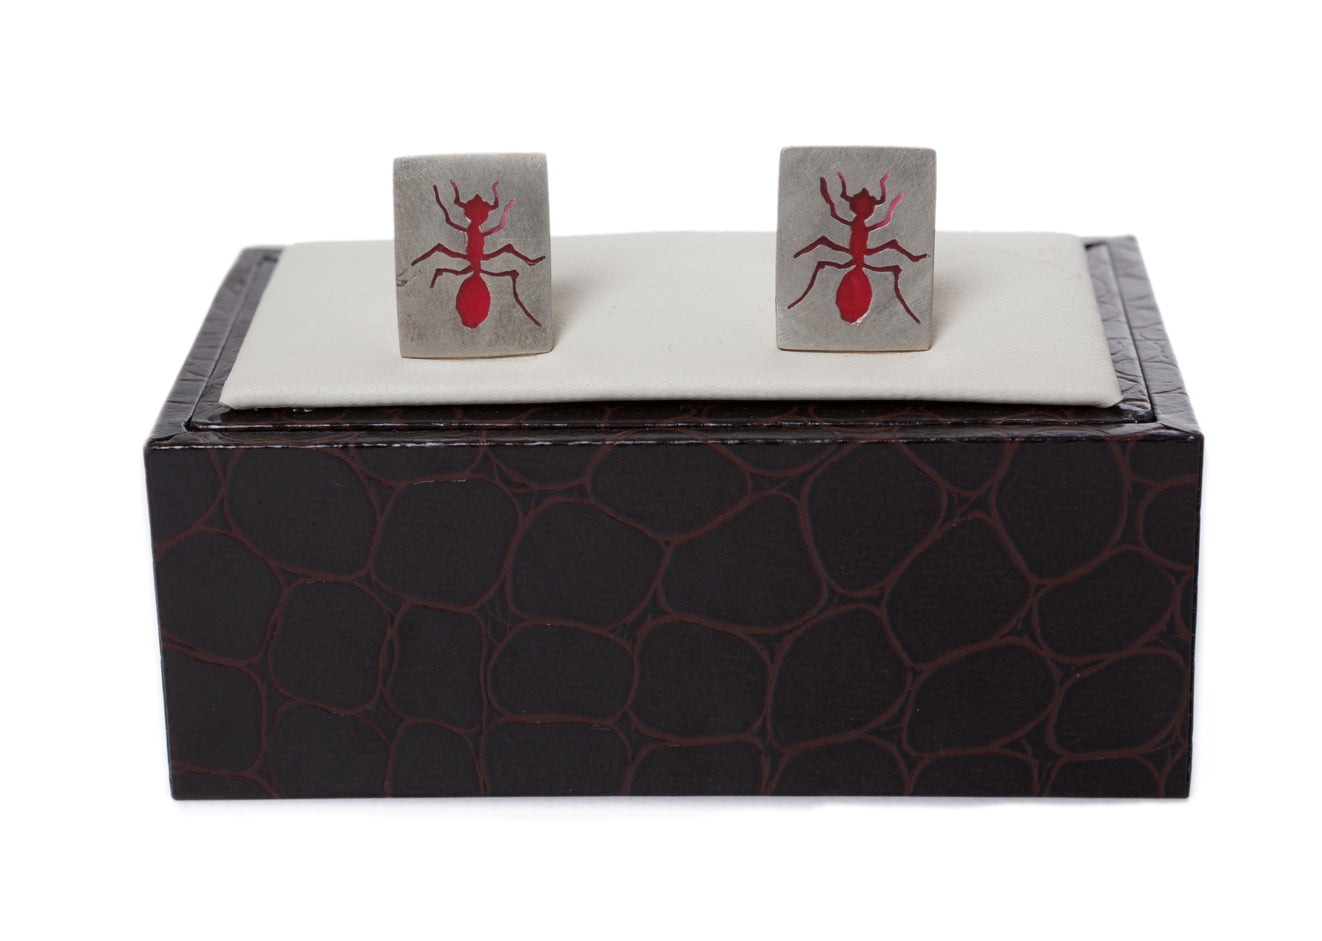 Regent Sterling Silver Cufflinks - Red Ants